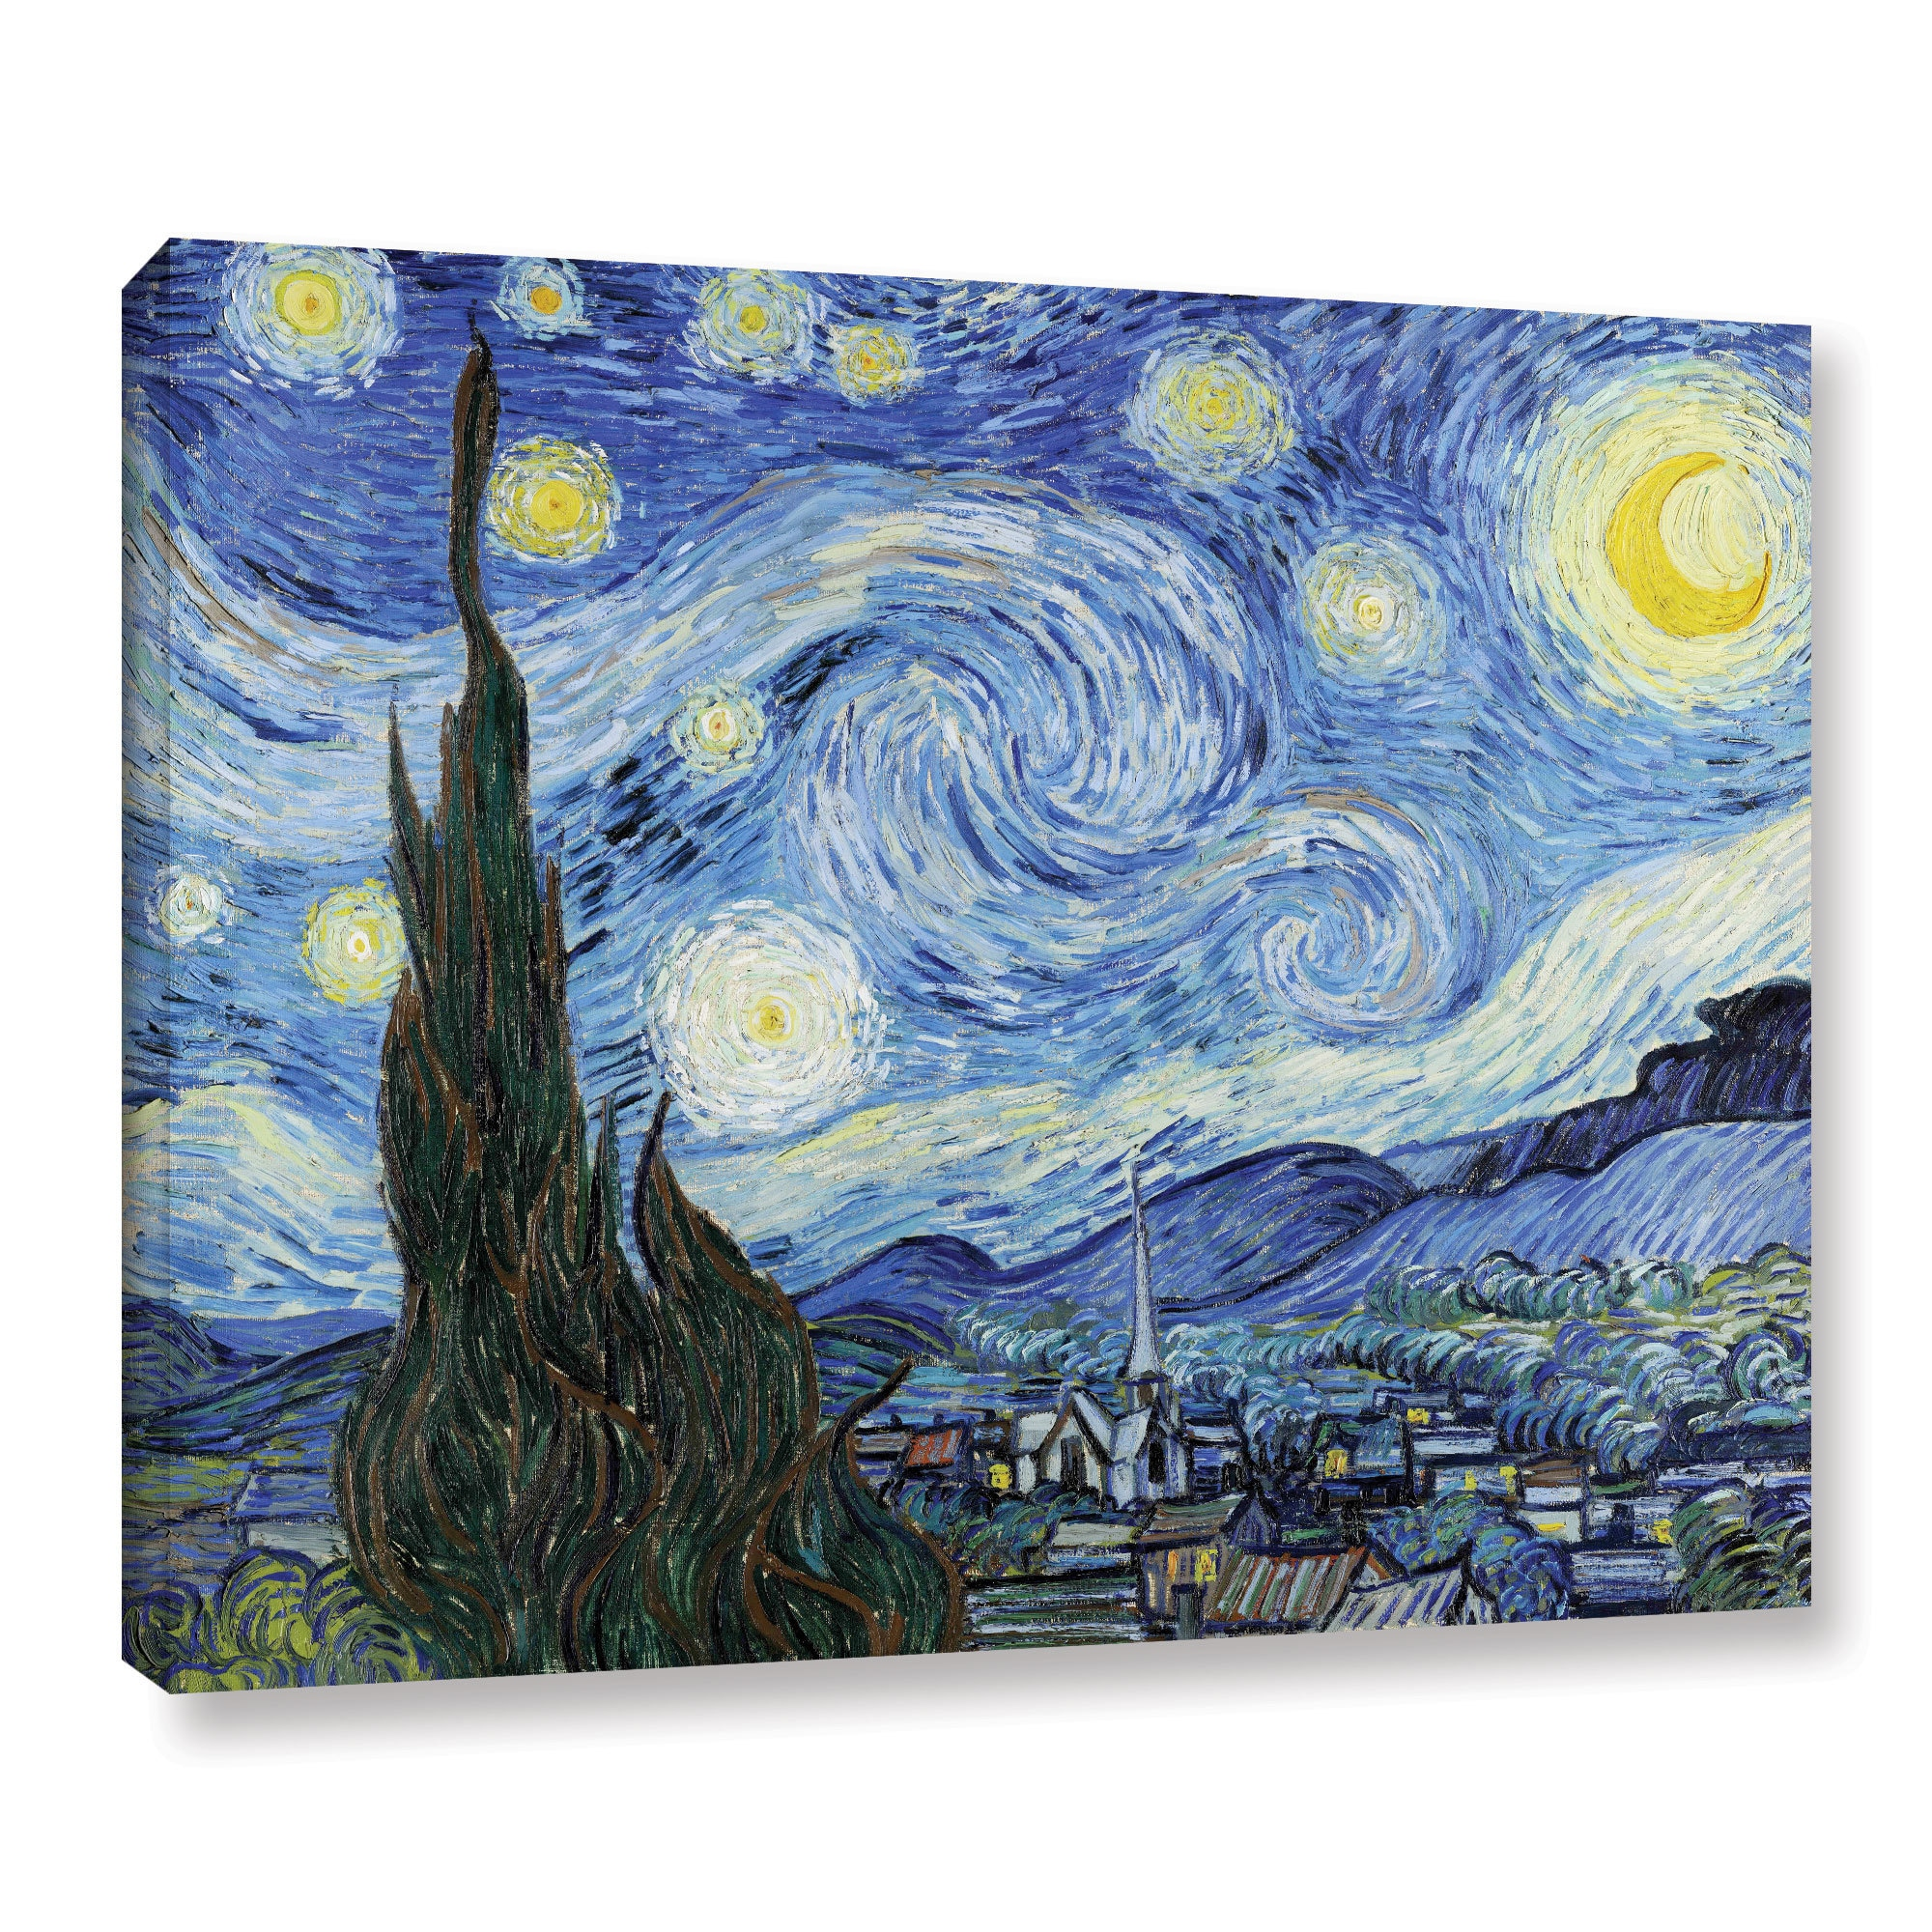 f2c52ec433c Shop Vincent van Gogh 'Starry Night' Gallery Wrapped Canvas - On ...